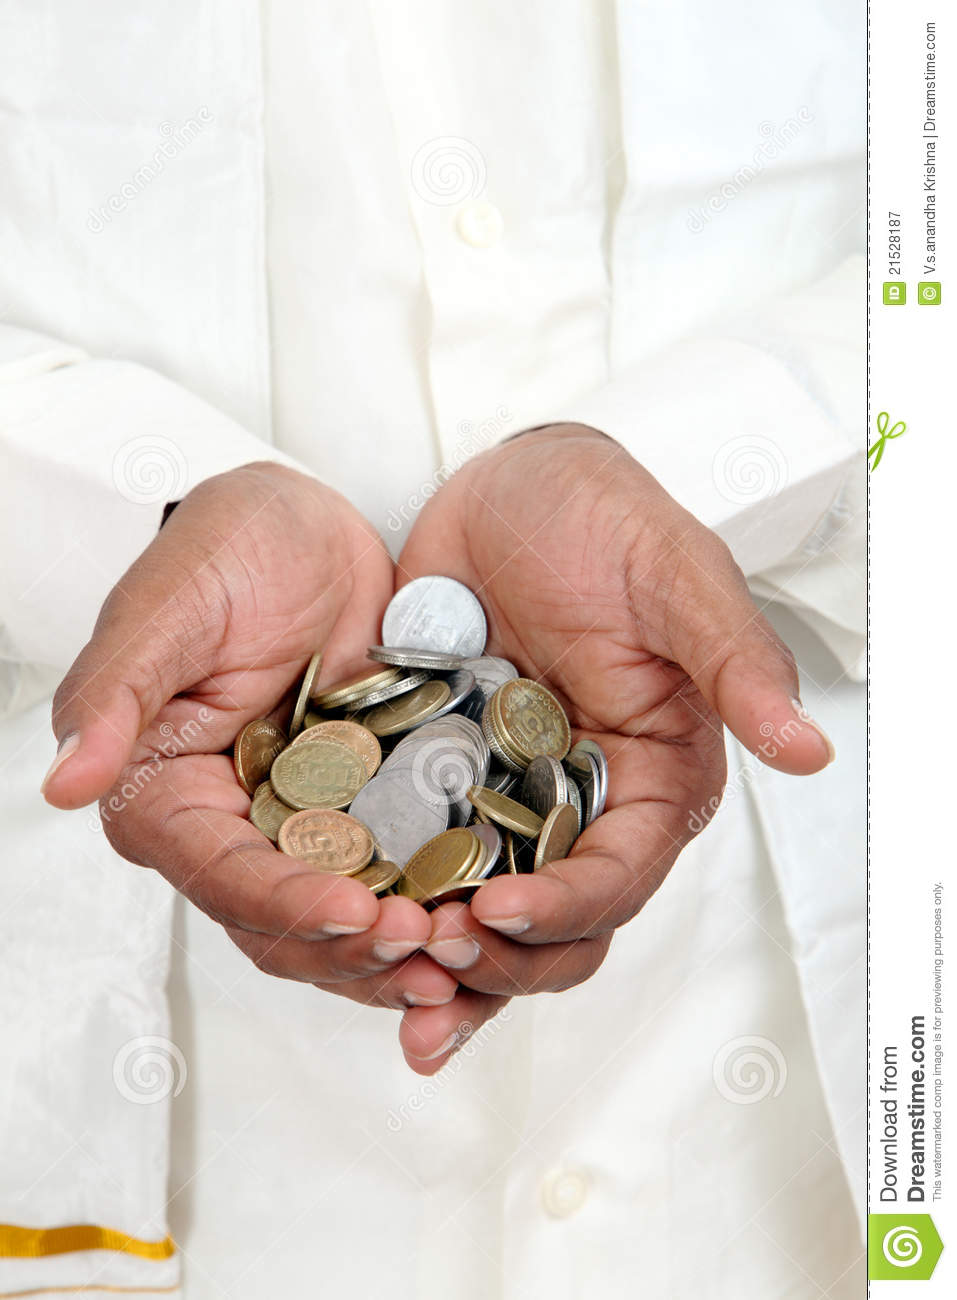 Hand With Indian Rupee Coins Stock Image - Image of bank, loan: 21528187